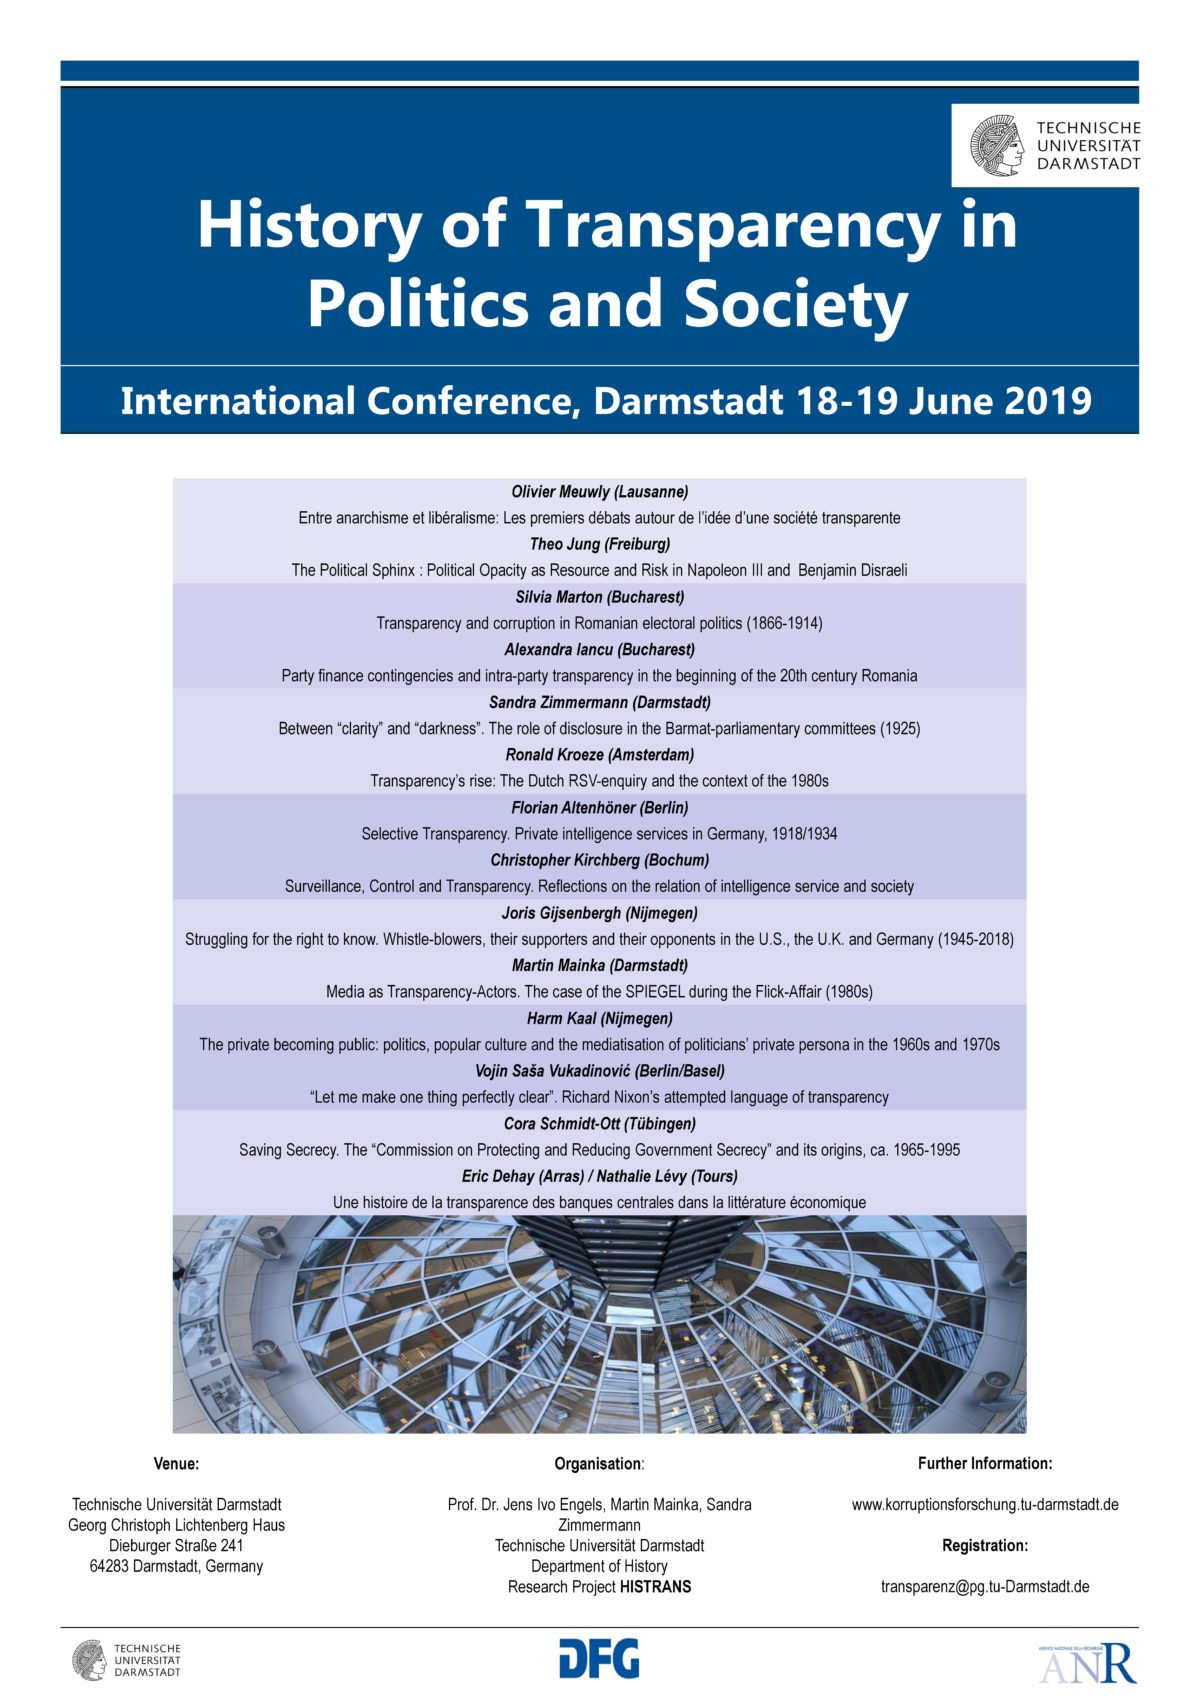 """""""History of Transparency in Politics and Society"""" Internationale Tagung in Darmstadt, 18.-19. Juni 2019"""